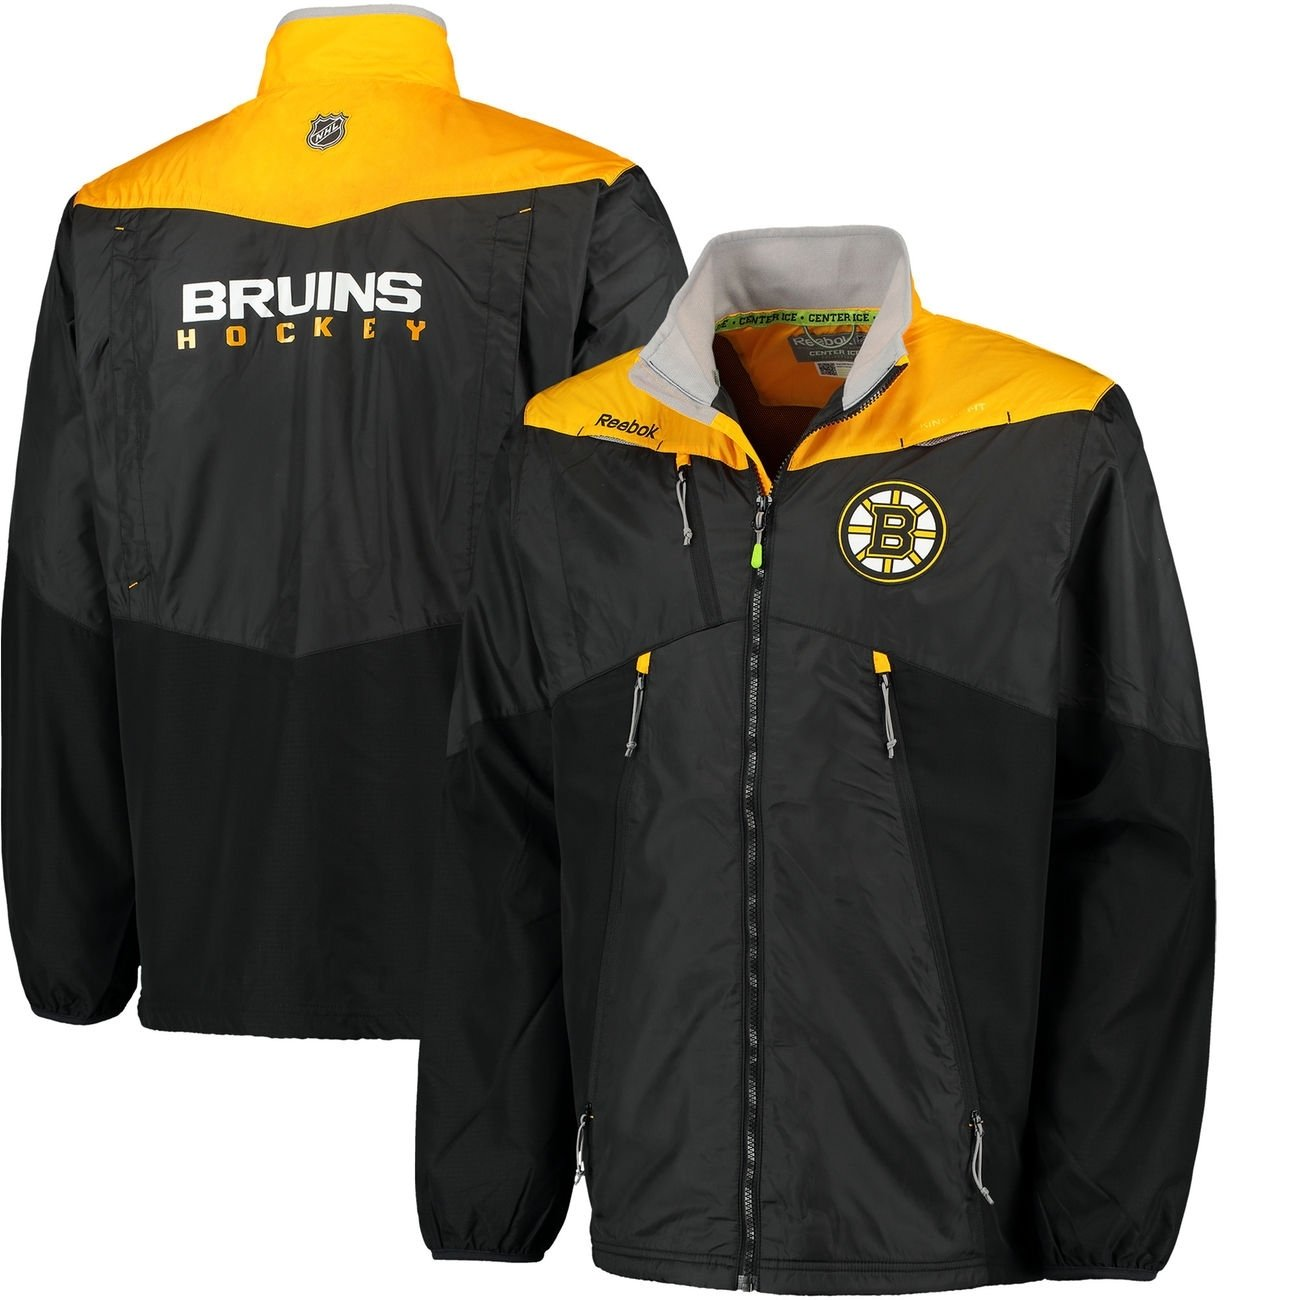 Reebok Boston Bruins Center Ice NHL Stadionjacke